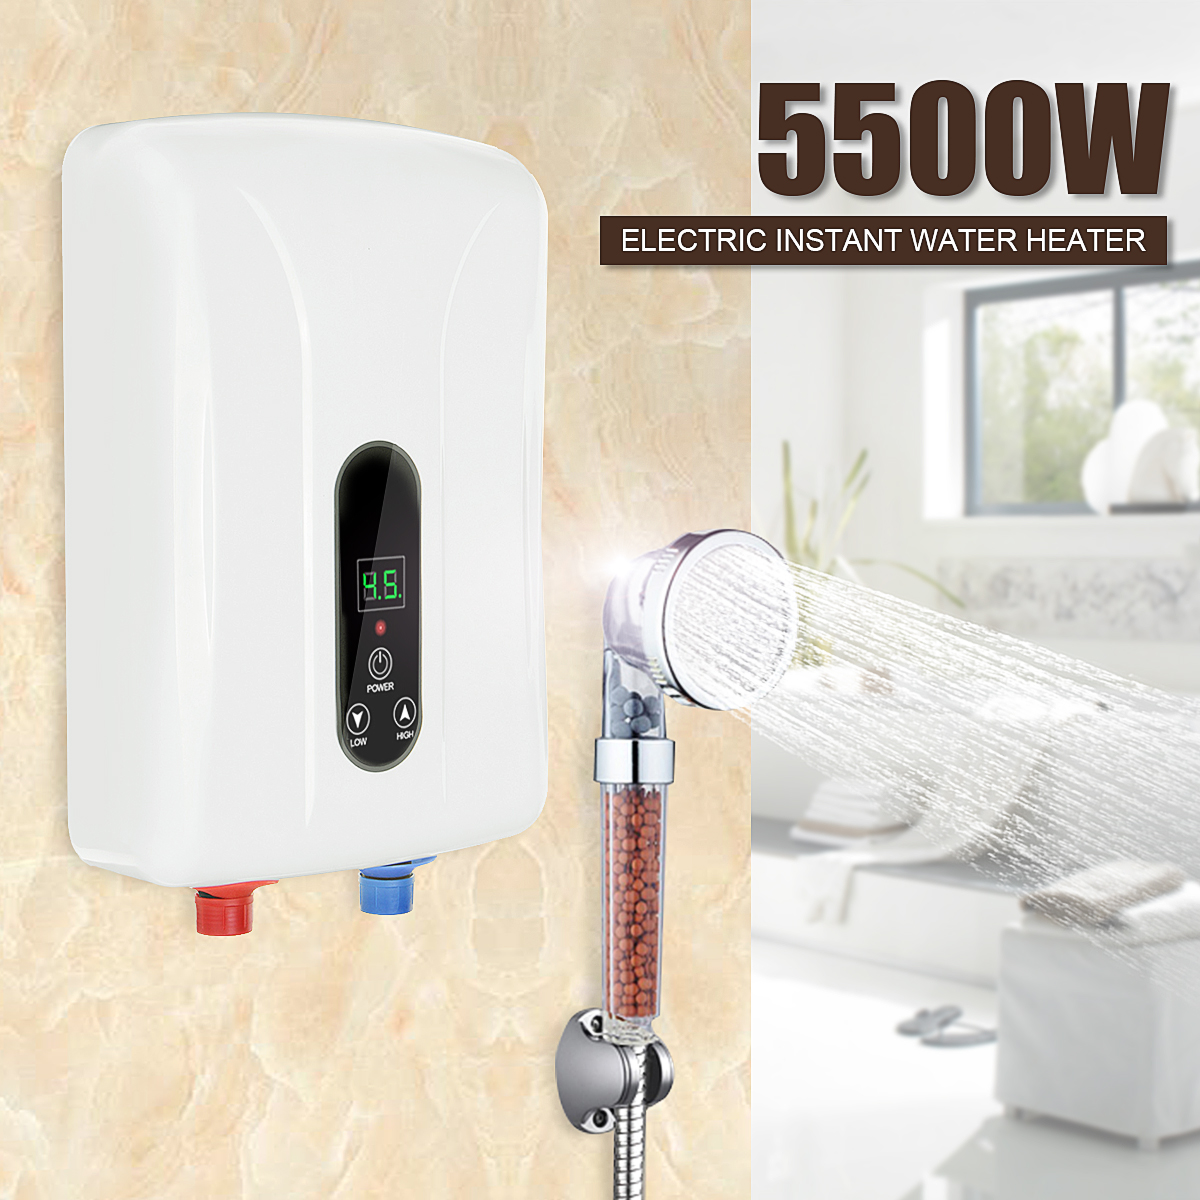 5500W Instant Heating Electric Water Heater LED Display Hot Water Heater Constant Temperature Leakage Protection Shower Home